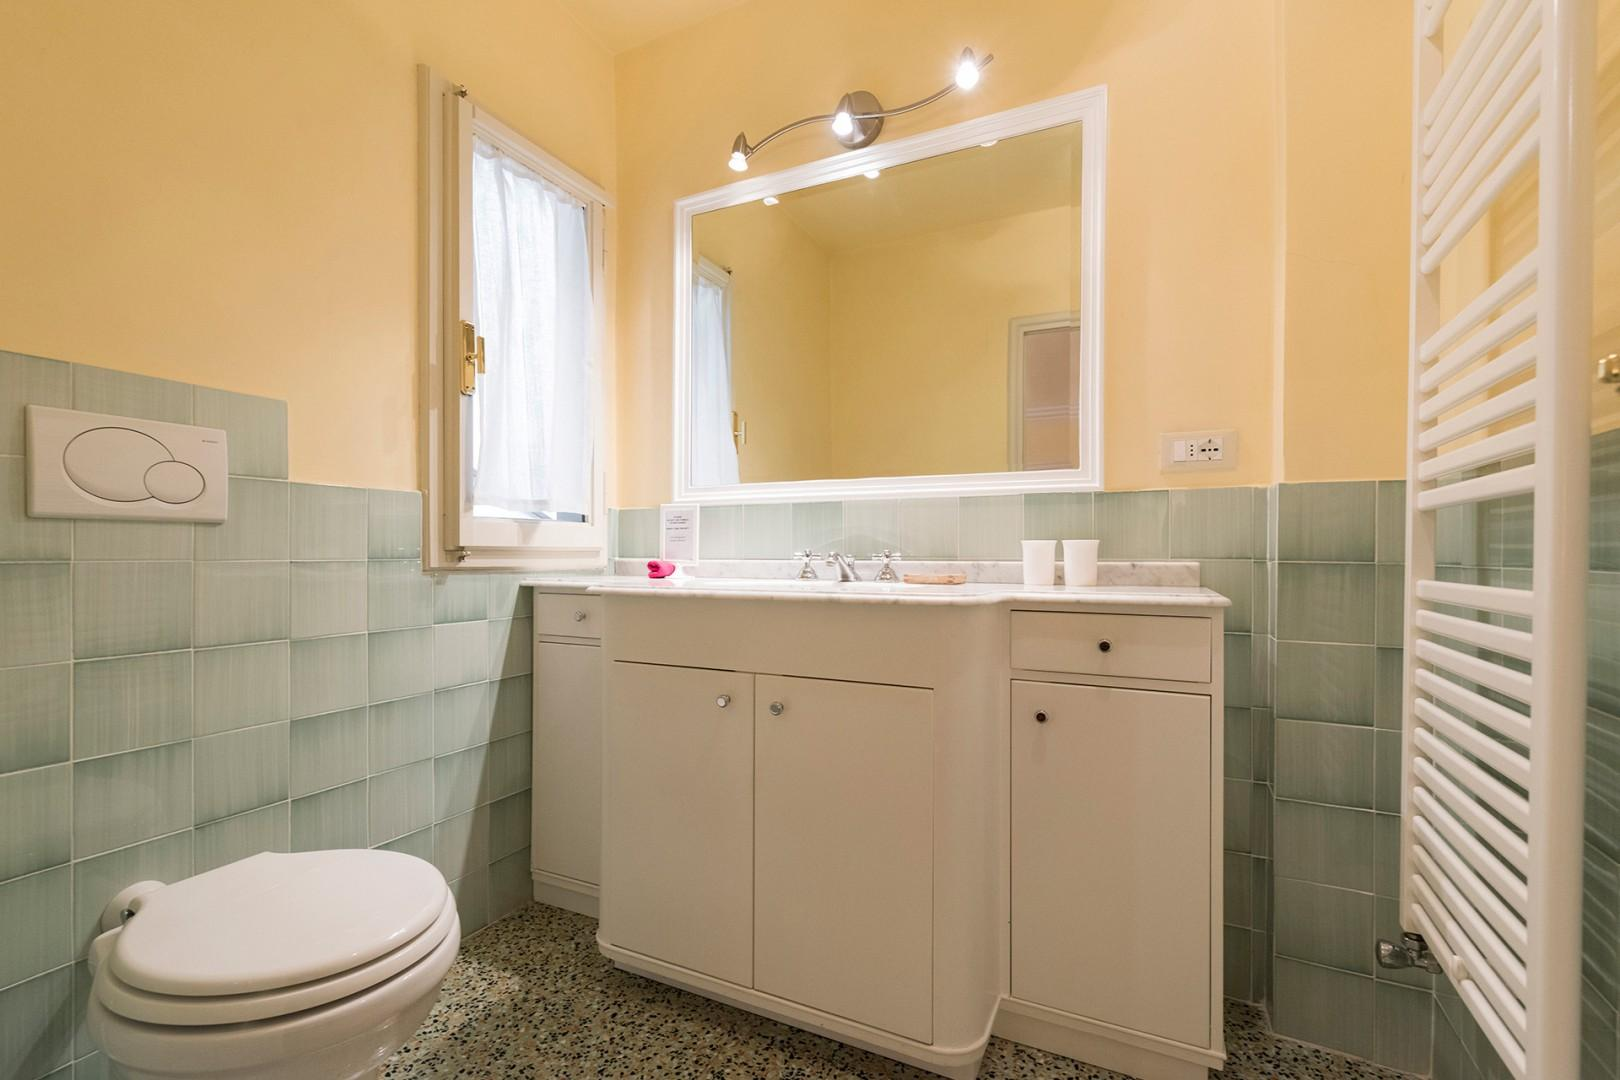 This bathroom has a shower and is en suite to bedroom 1